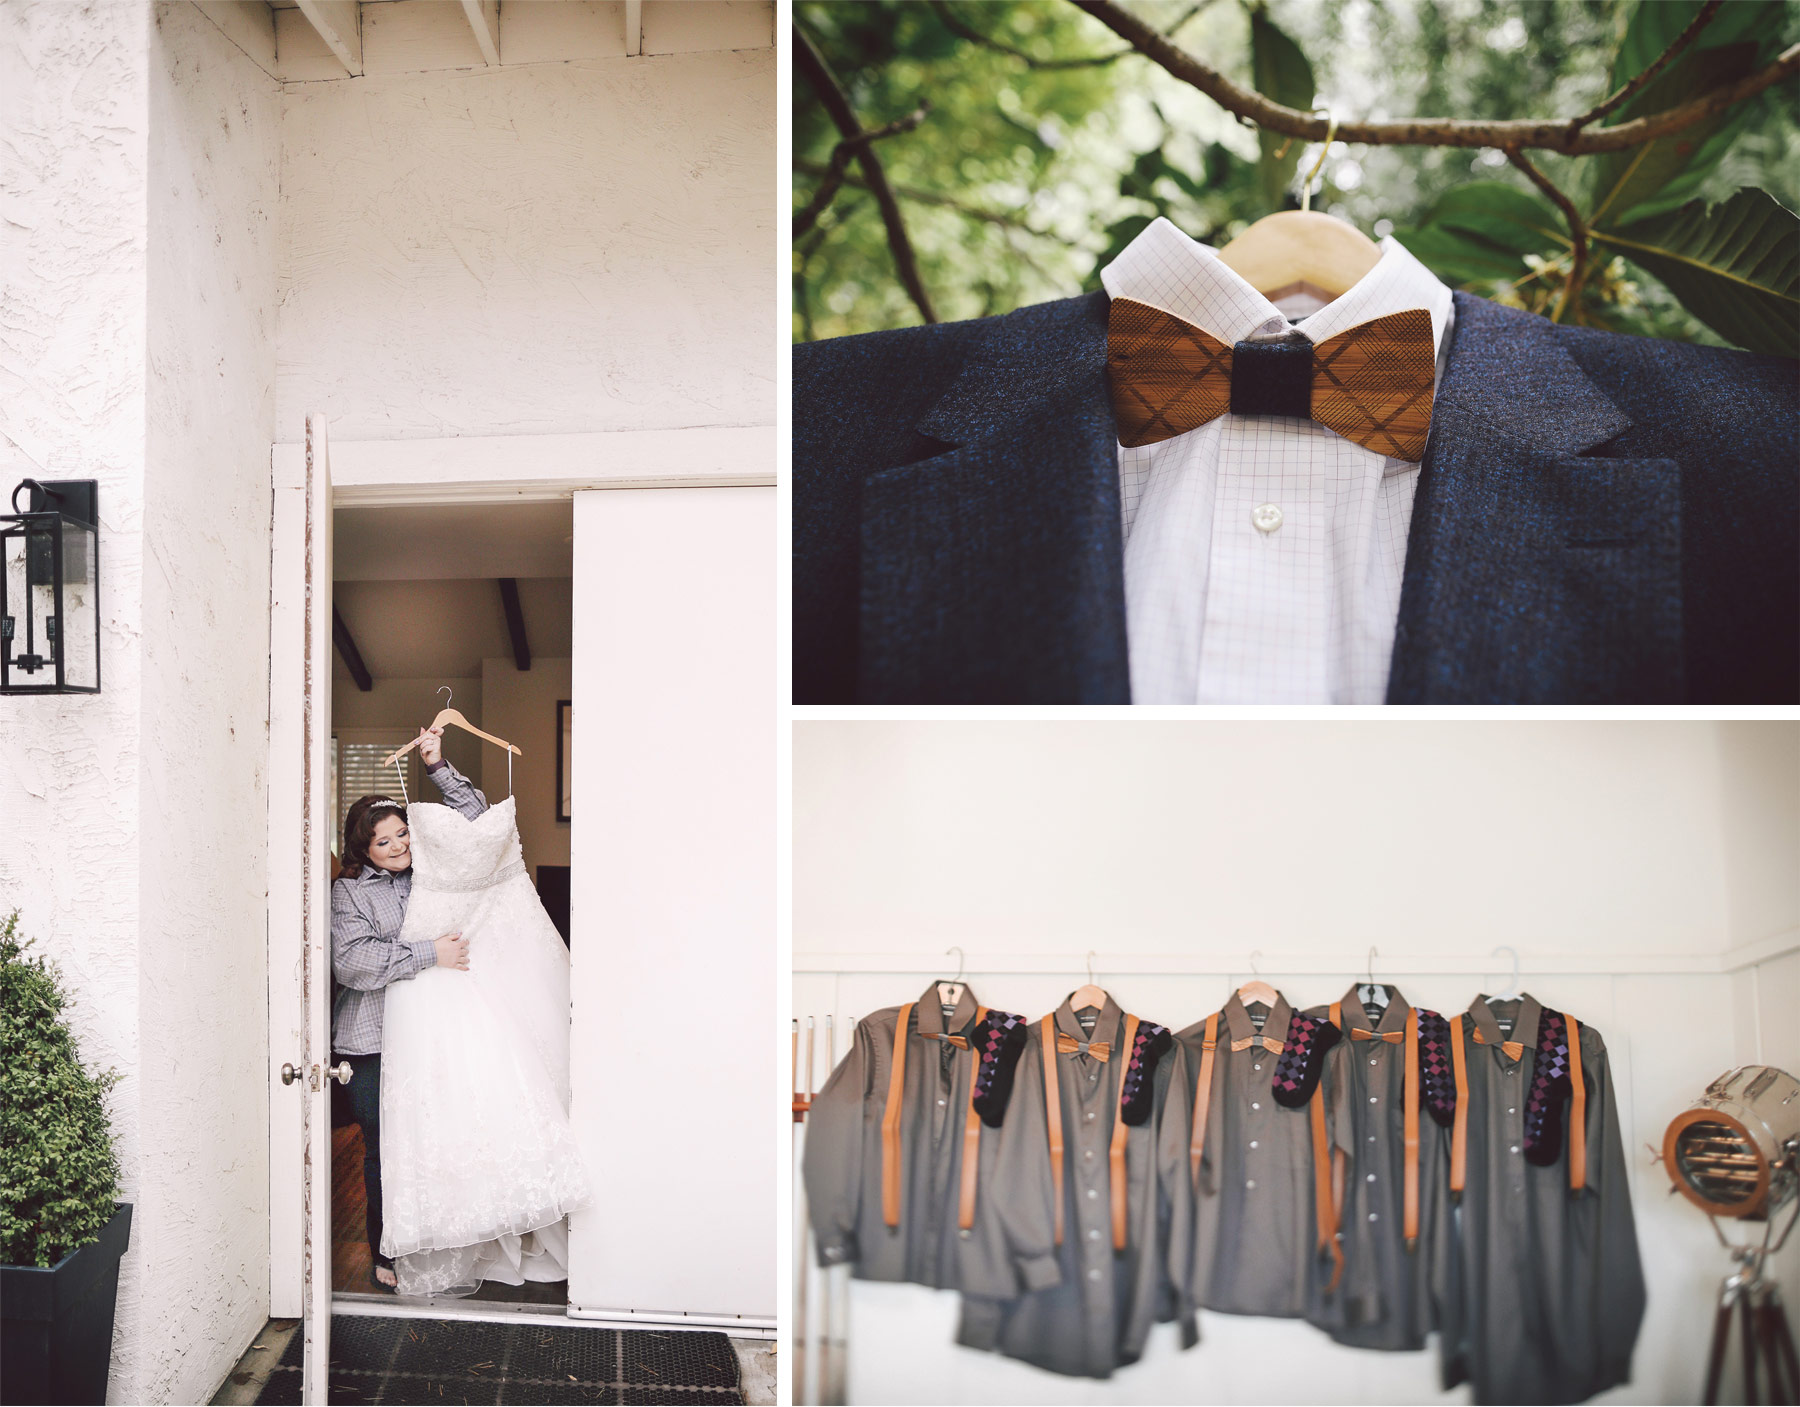 01-Los-Angeles-California-Wedding-Photographer-by-Vick-Photography-Highland-Springs-Ranch-LGBT-Wood-Bowtie-Wedding-Morning-Rebecca-and-Terri.jpg